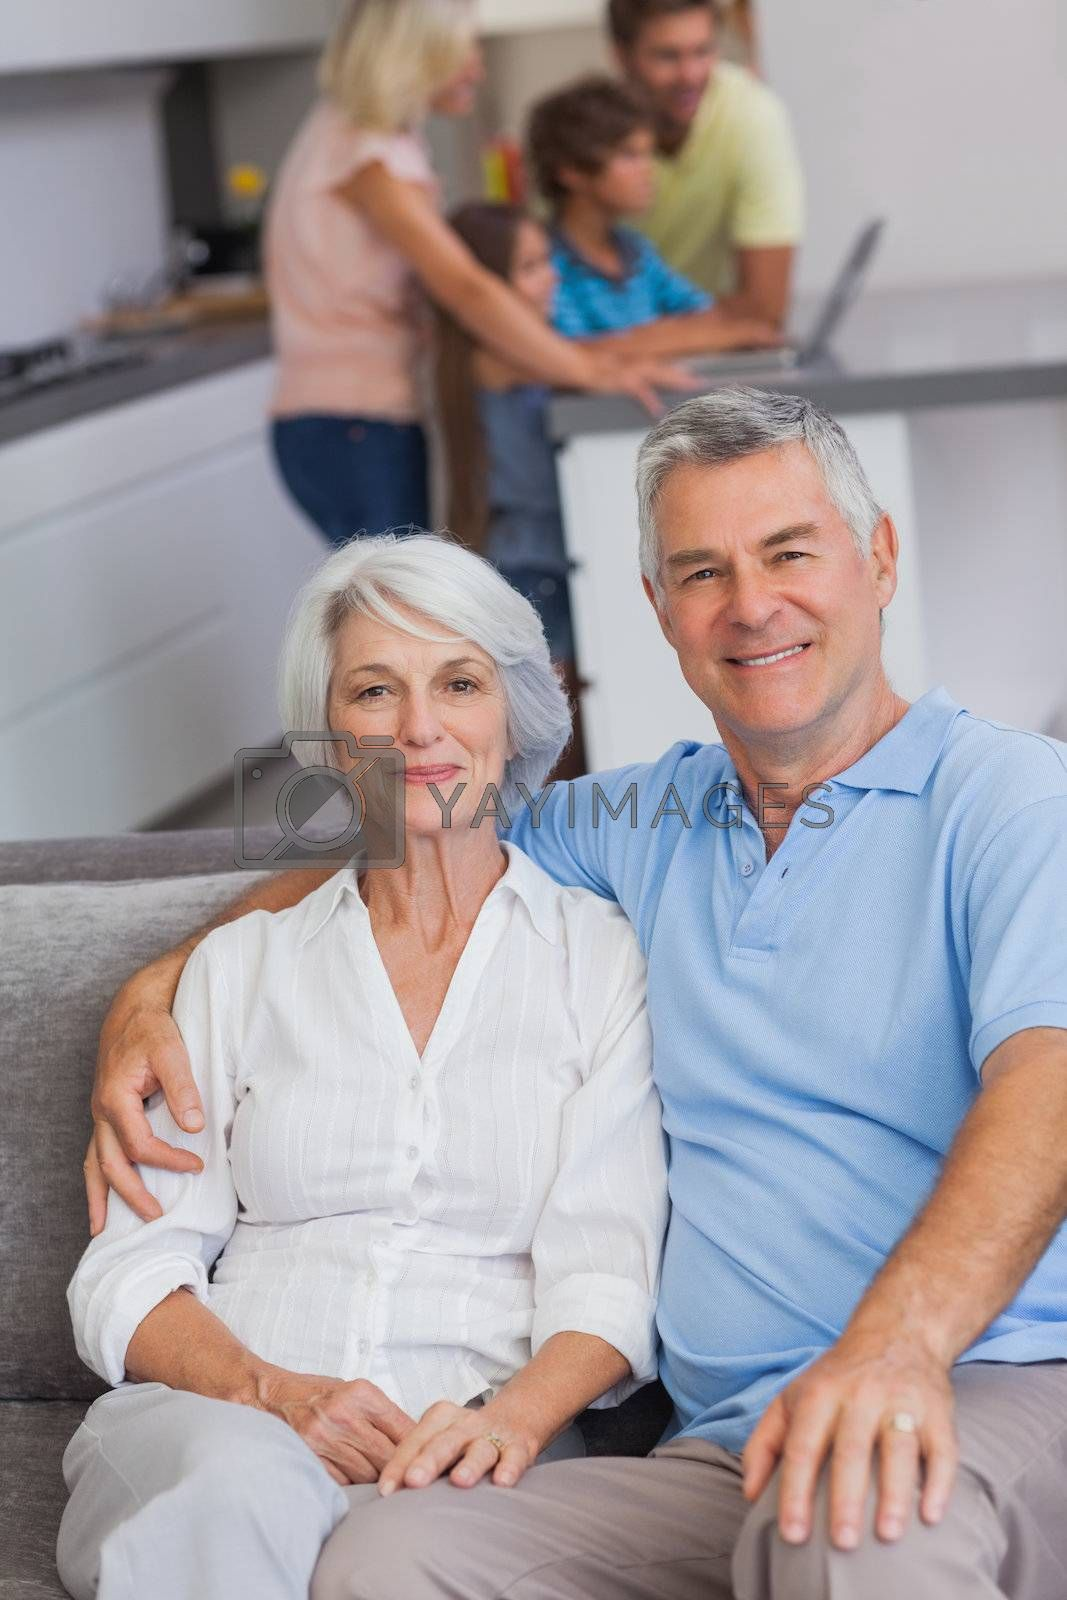 Portrait of a couple sitting on couch with their family in the kitchen behind them